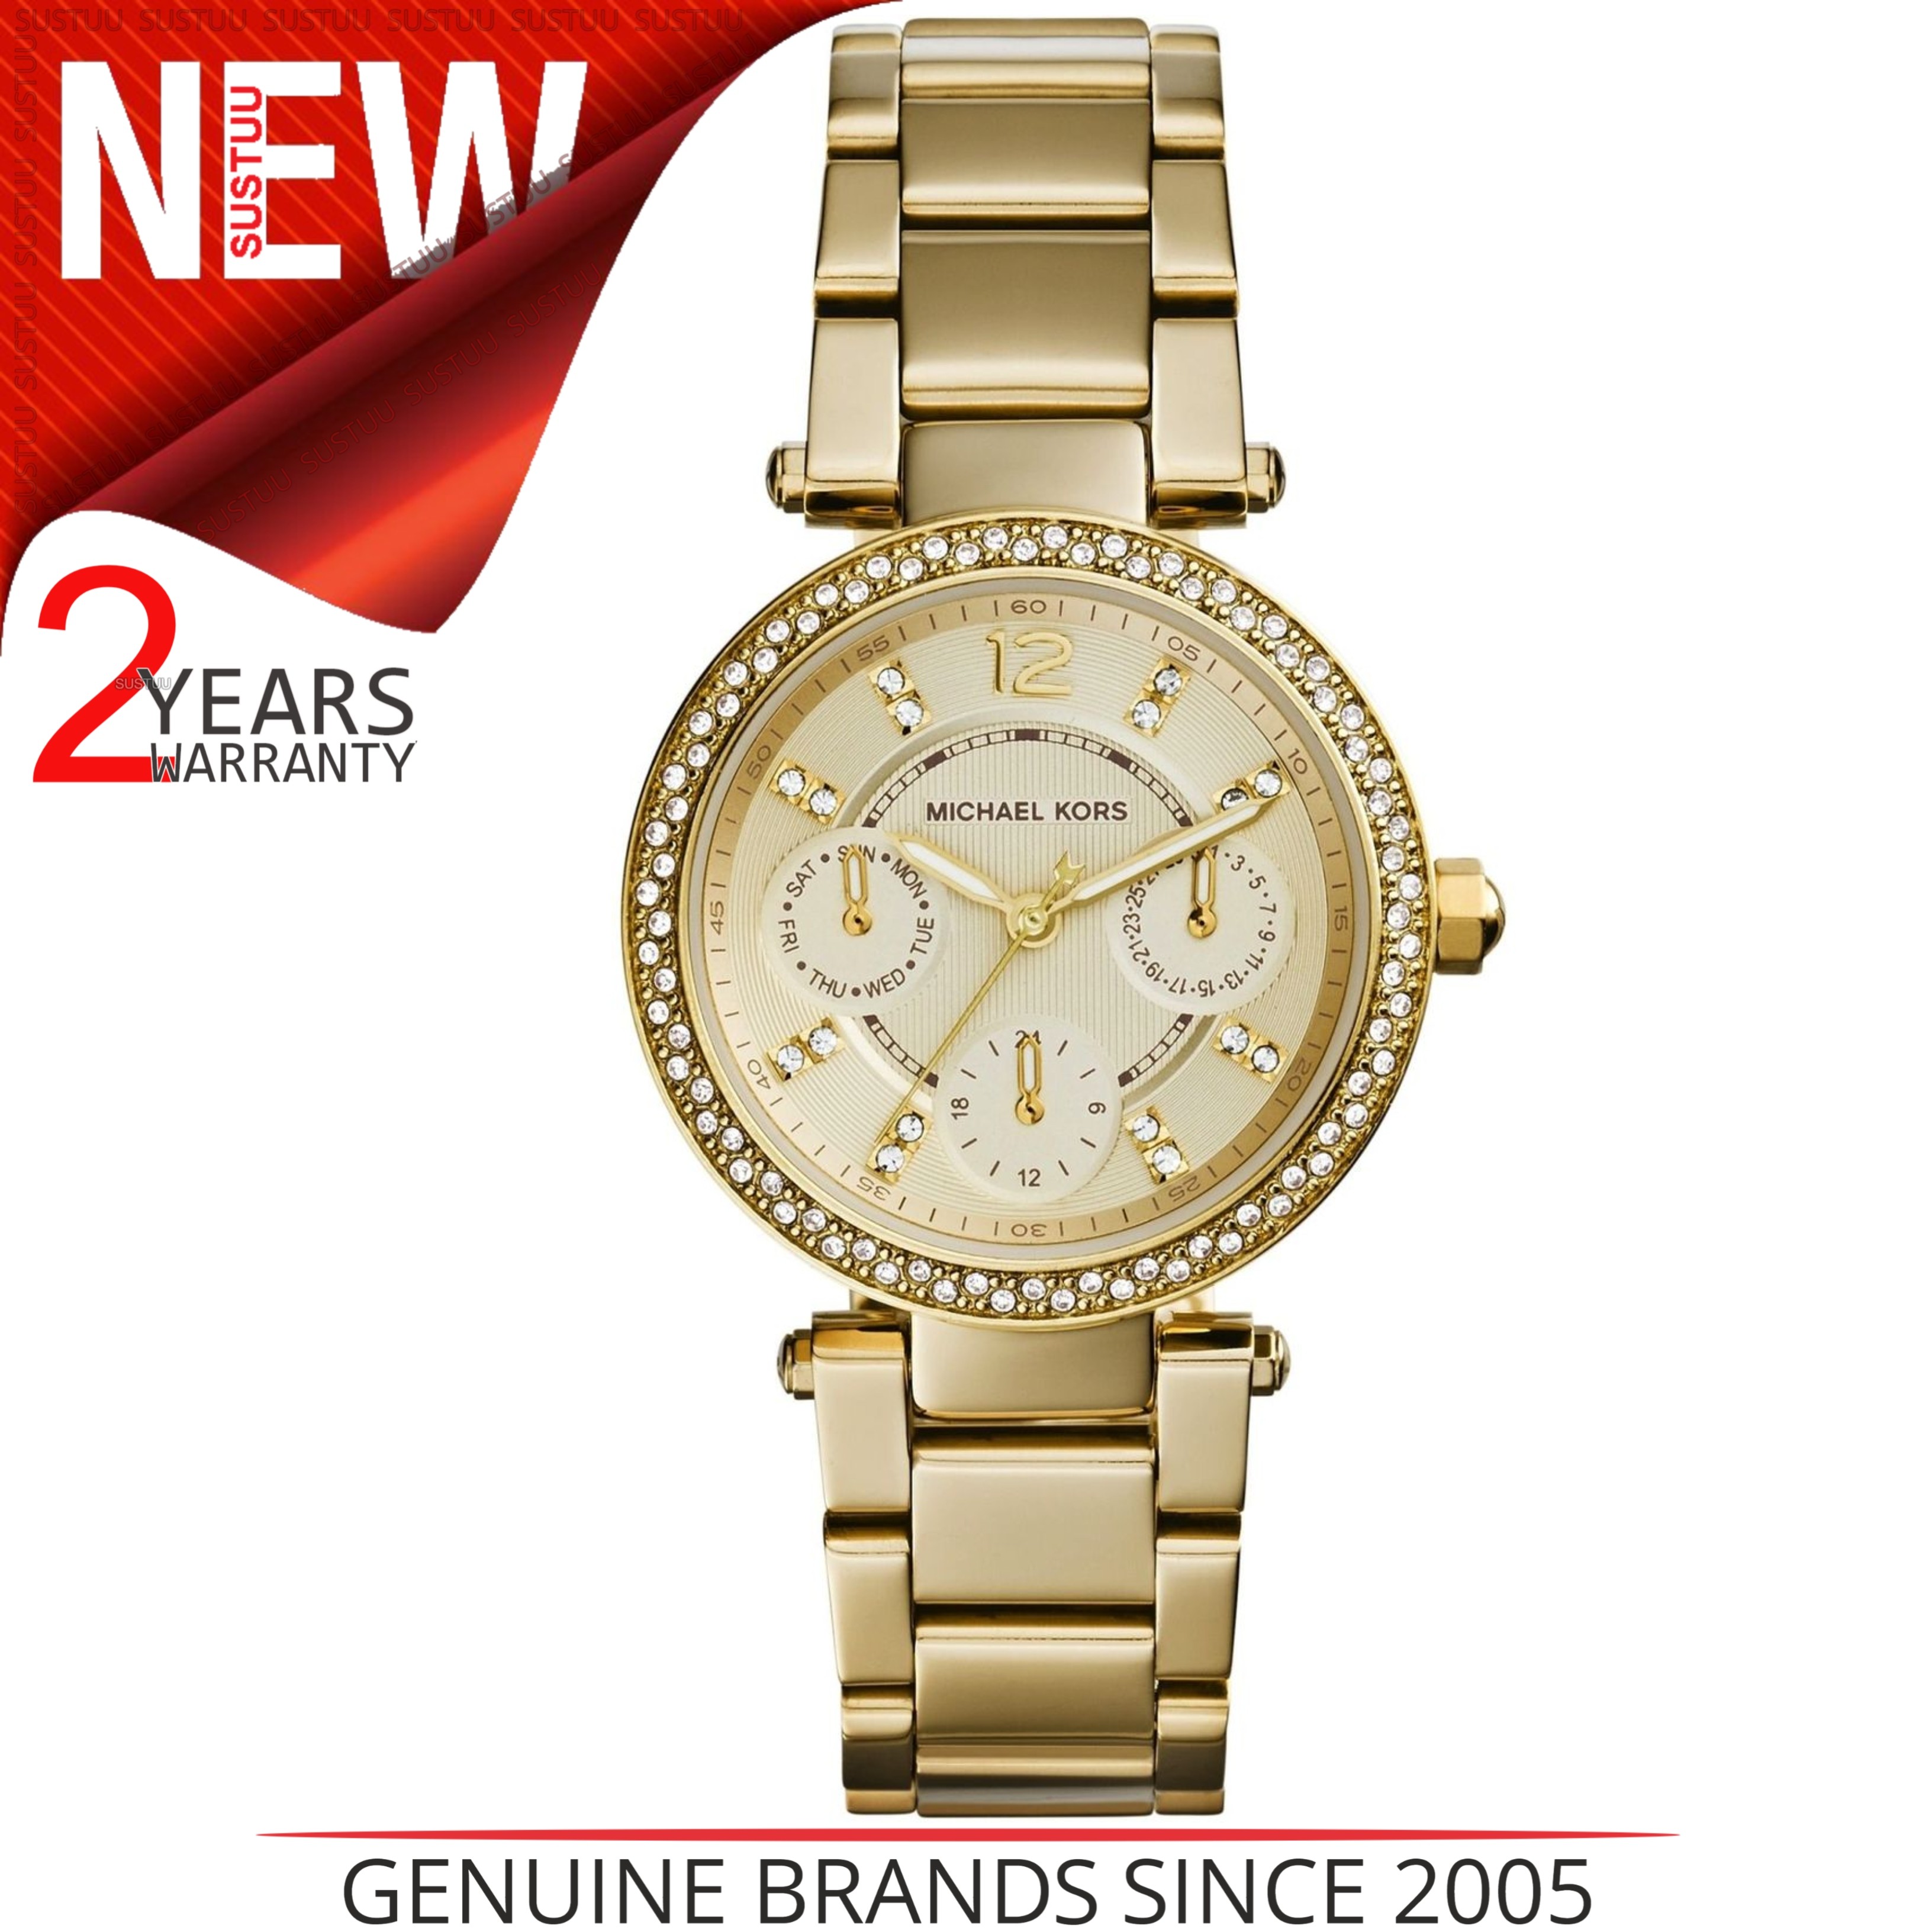 83ec528ee3e1 Details about Michael Kors Ladies Gold-Tone Mini Parker Pavé Crystal  Calender Watch MK6056